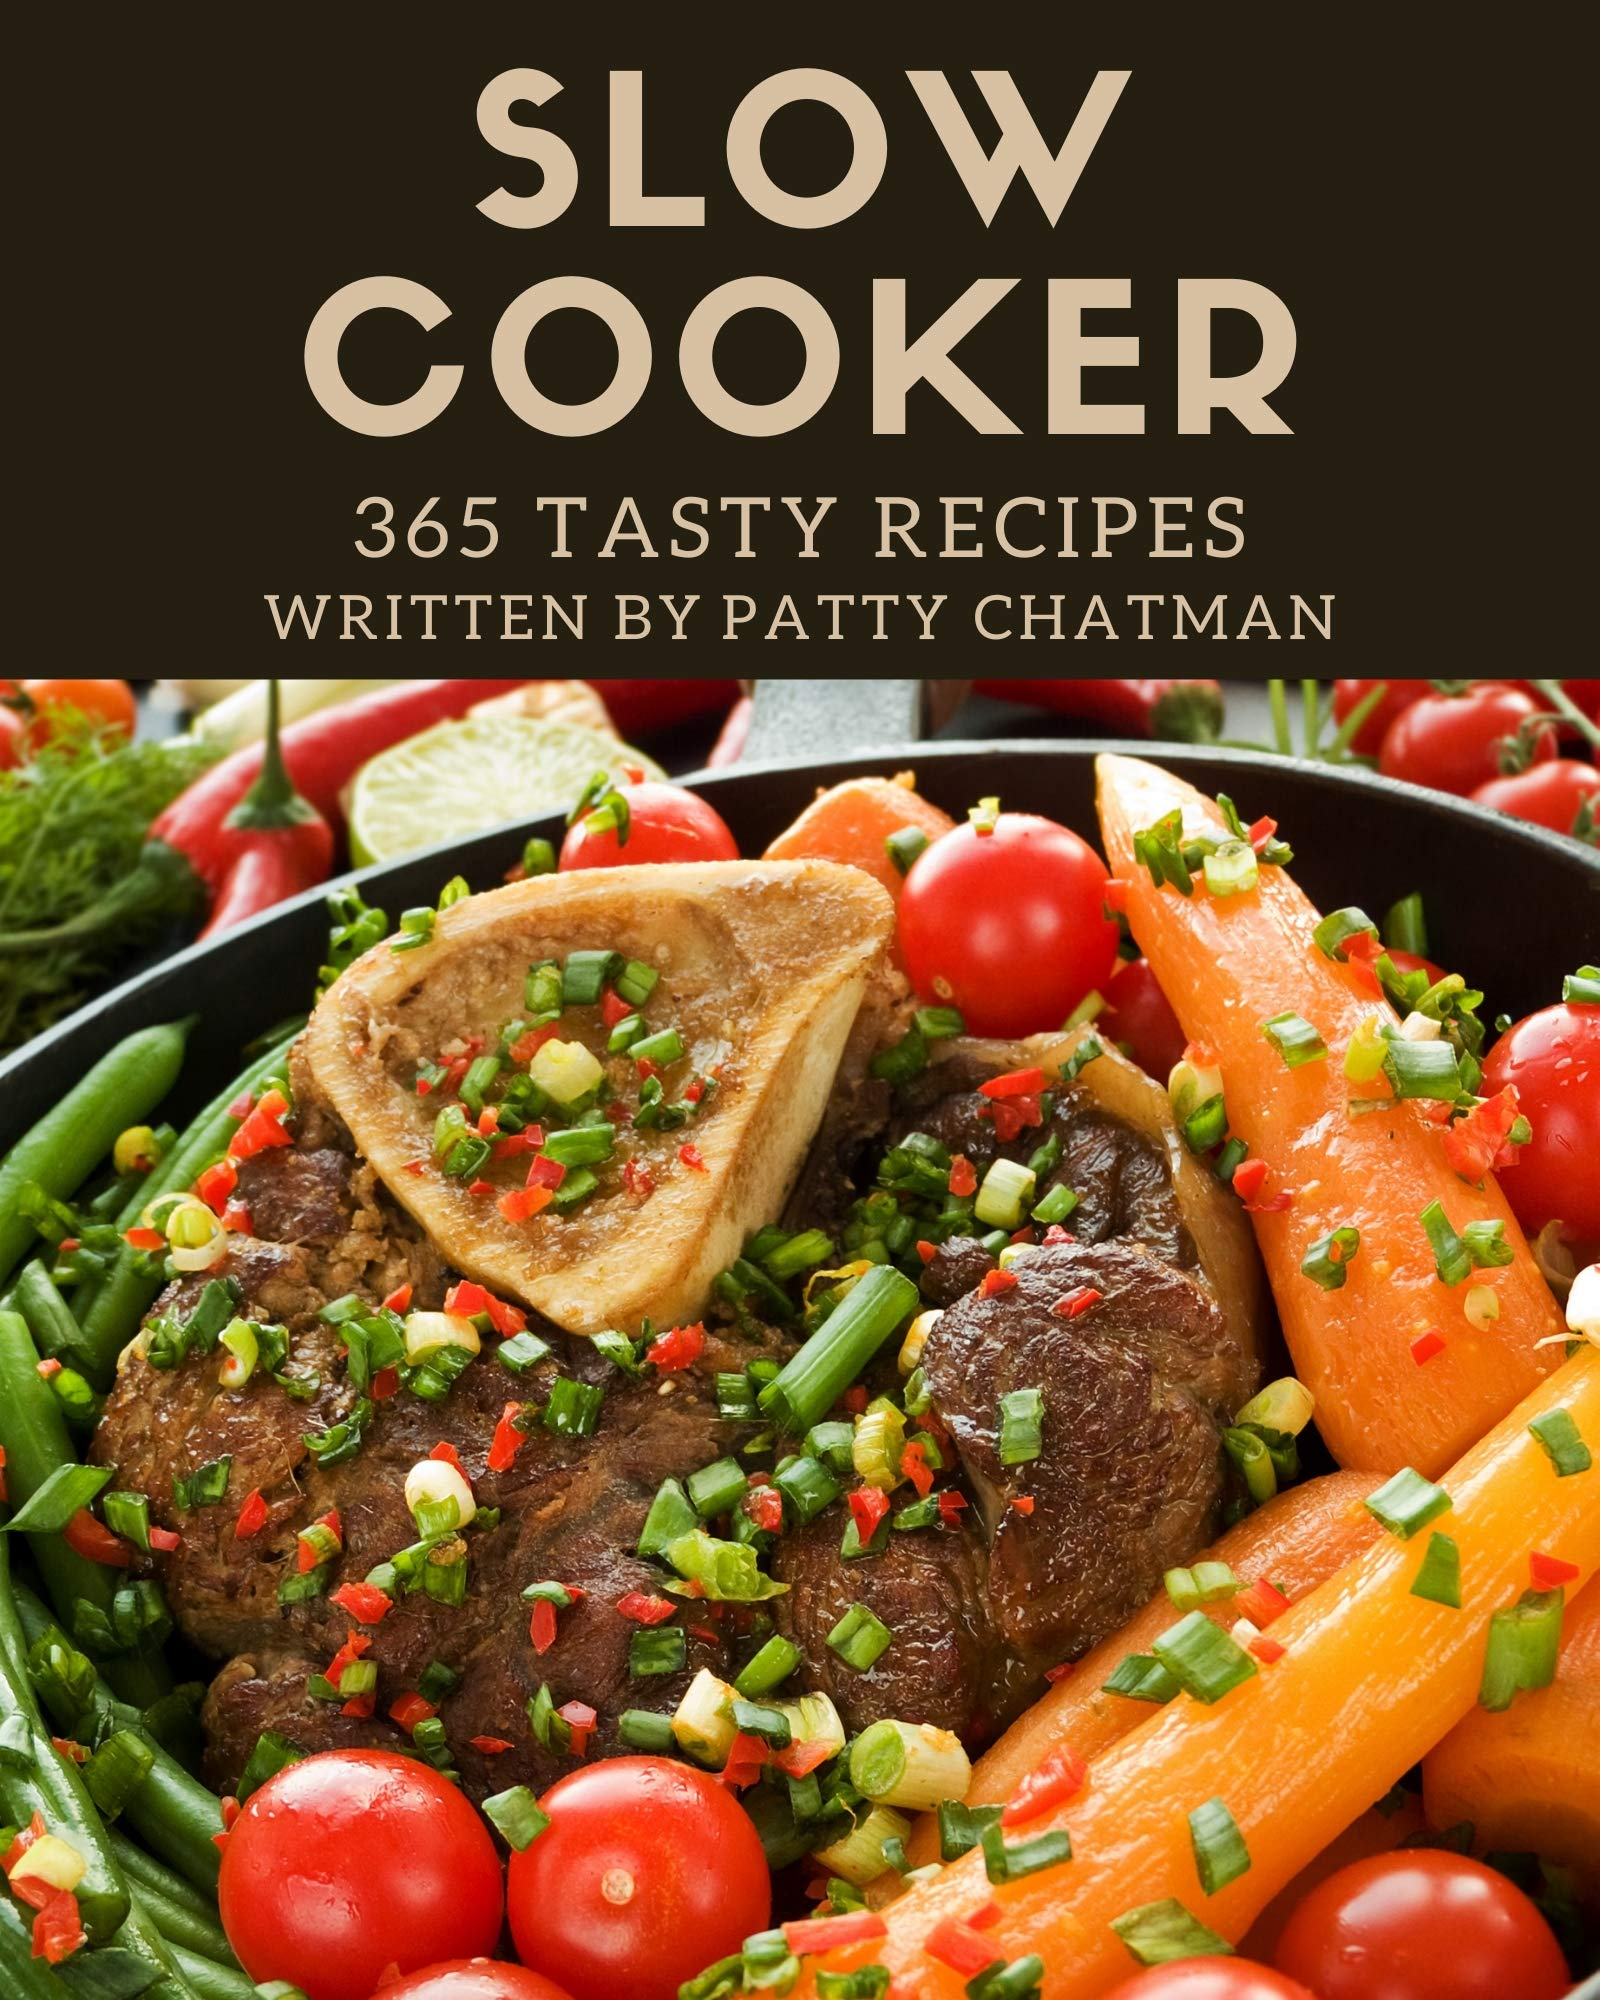 365 Tasty Slow Cooker Recipes: Slow Cooker Cookbook - The Magic to Create Incredible Flavor!